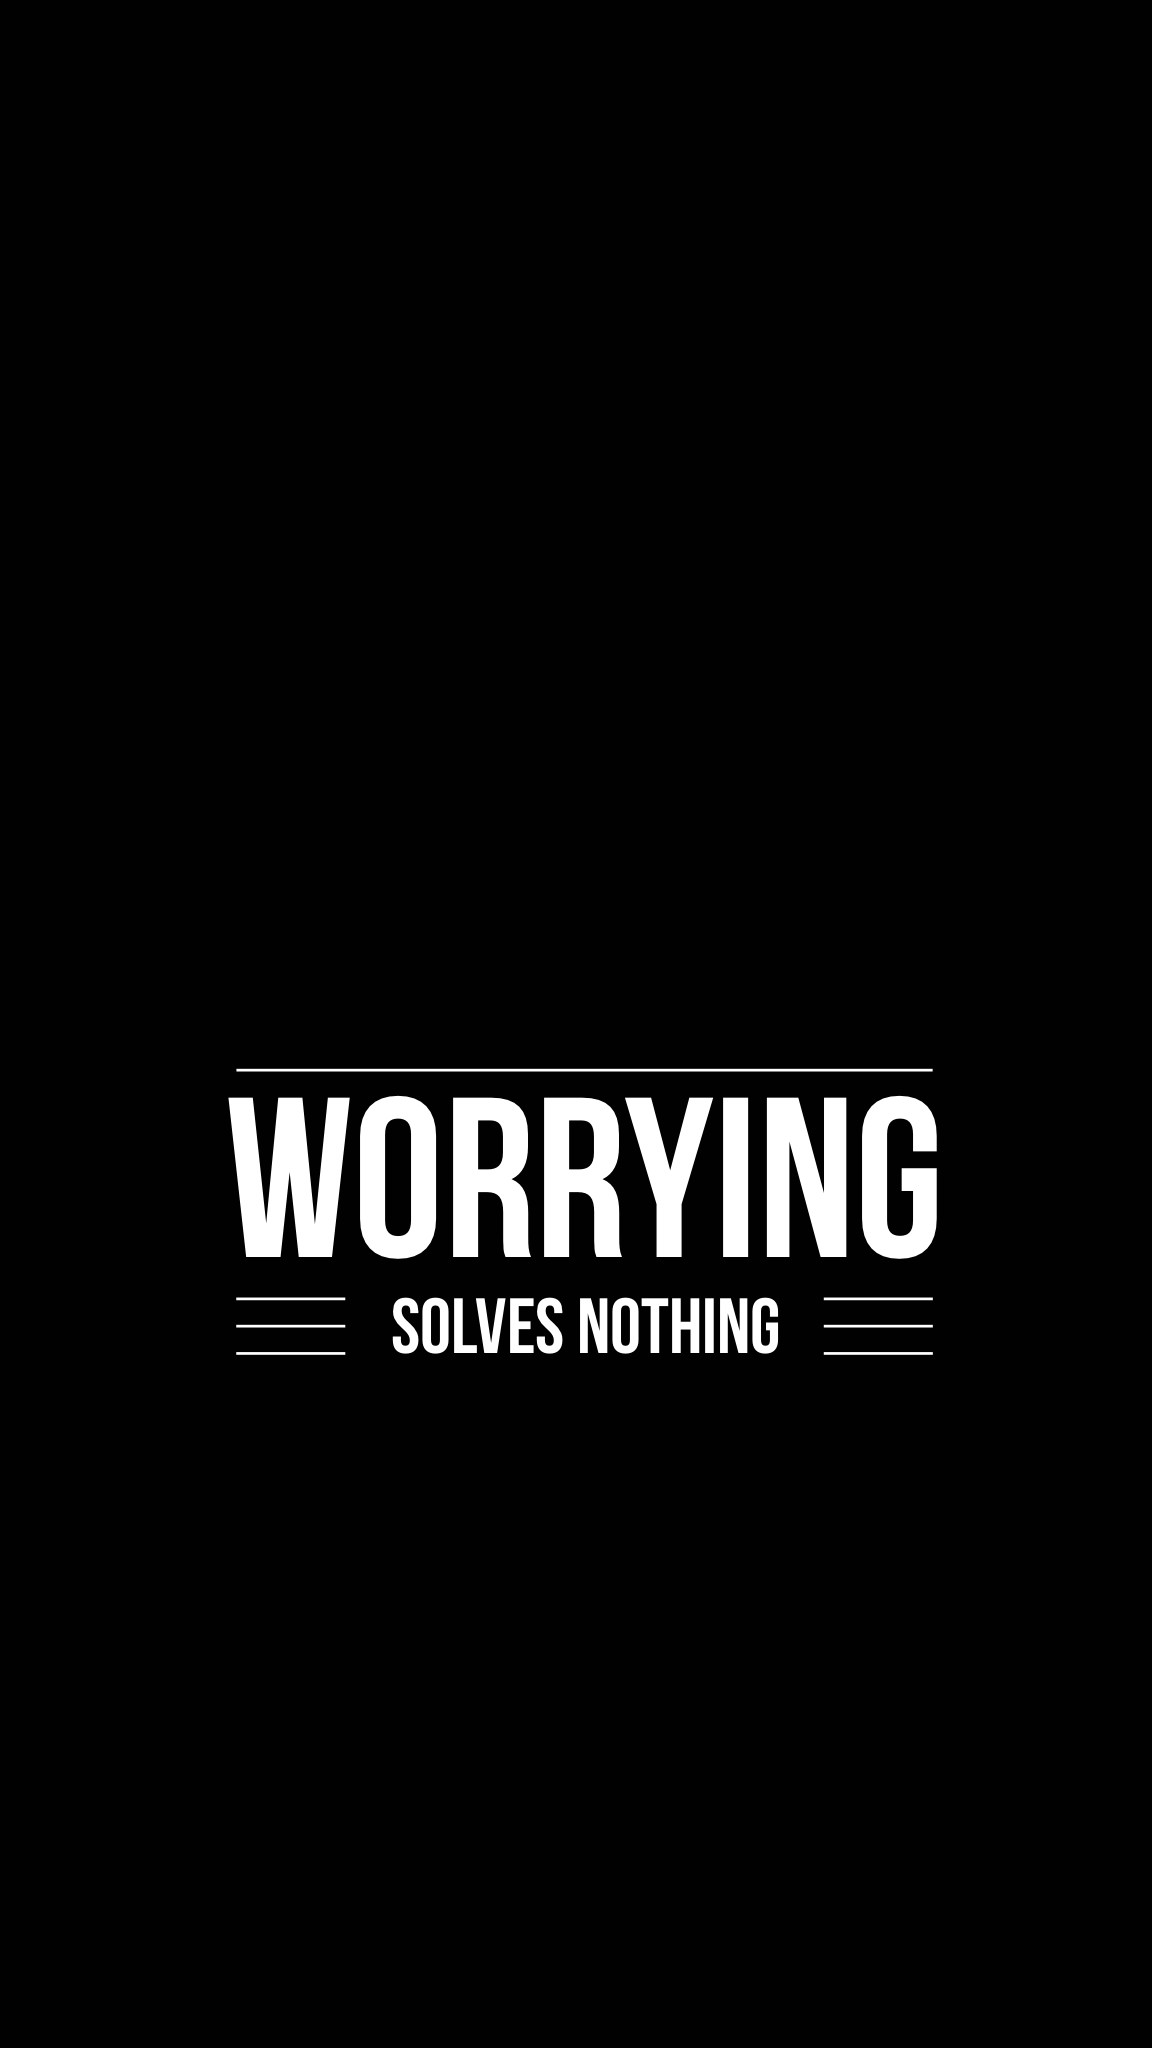 Wallpaper Wall Background IPhone Android Minimal Simple Quote